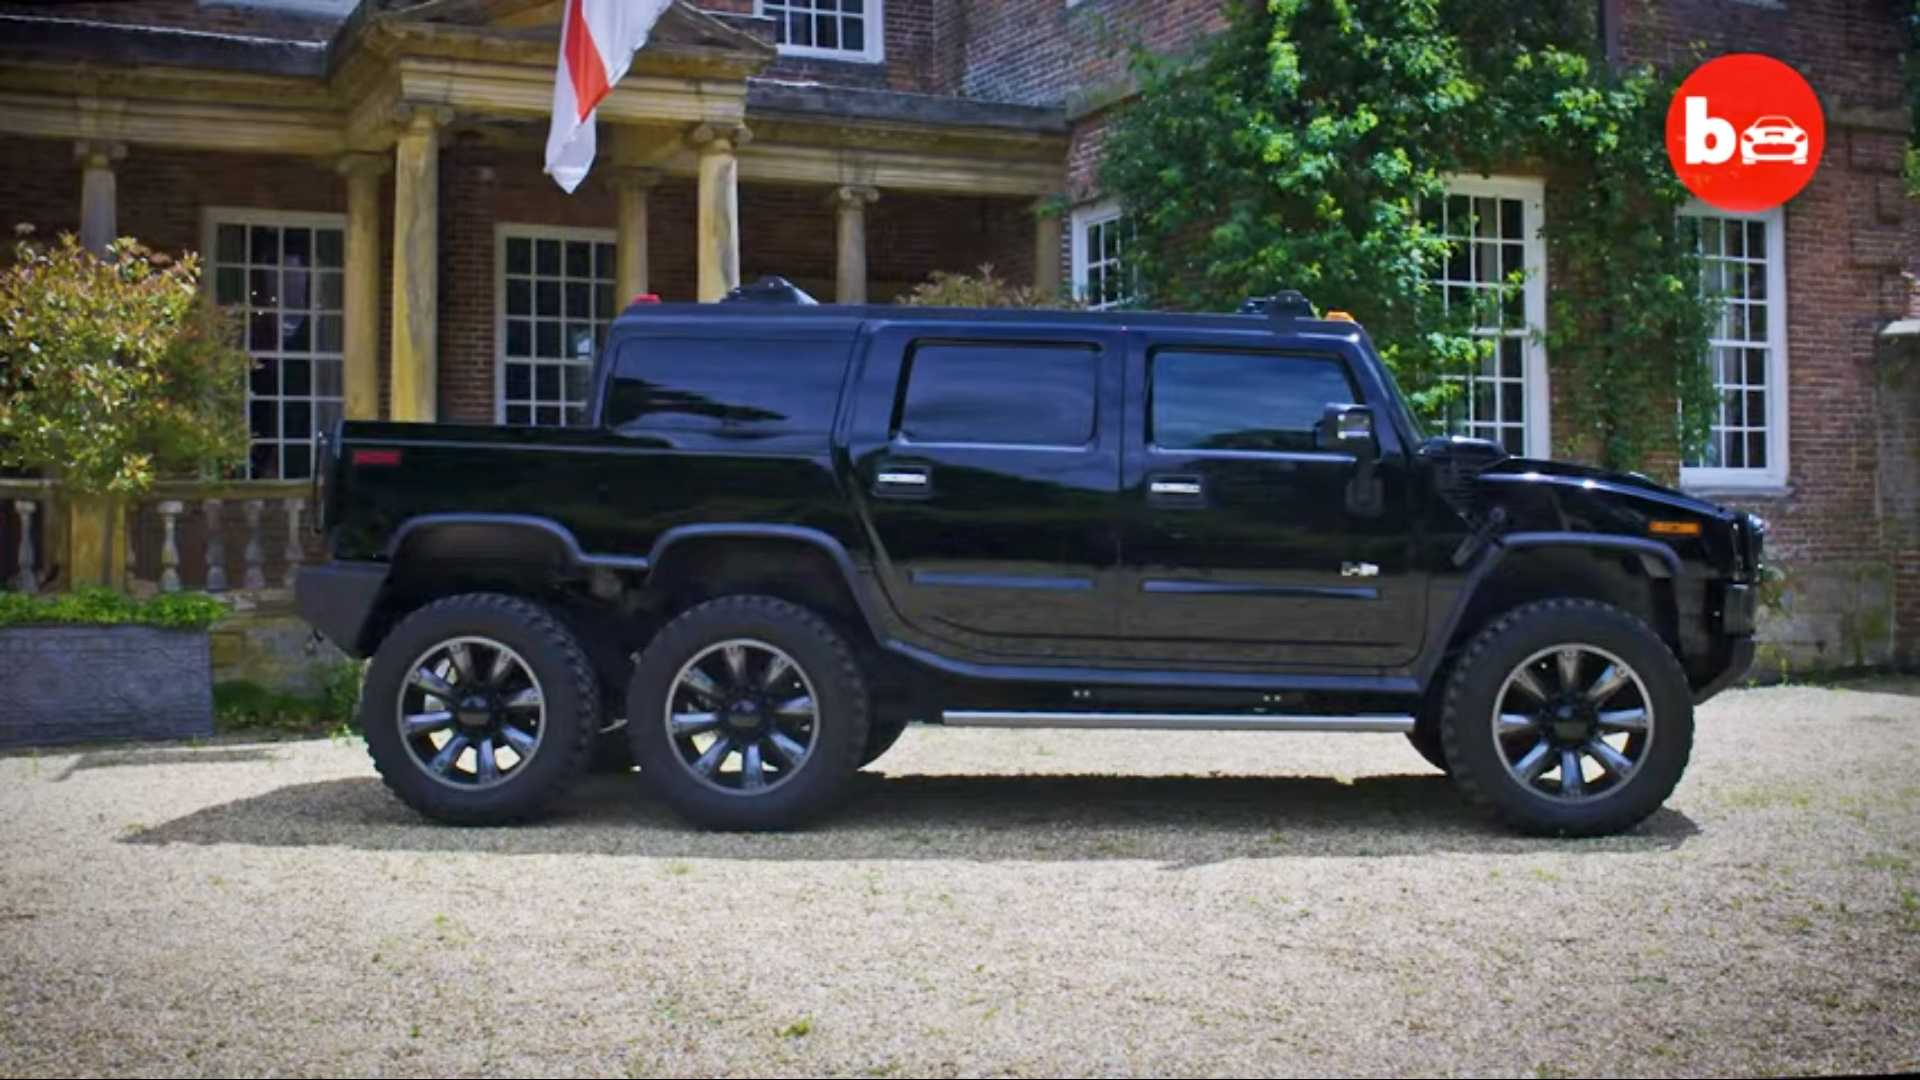 Six-Wheeled Hummer H11 Laughs In The Face Of Conventional SUVs | how much does a hummer car cost